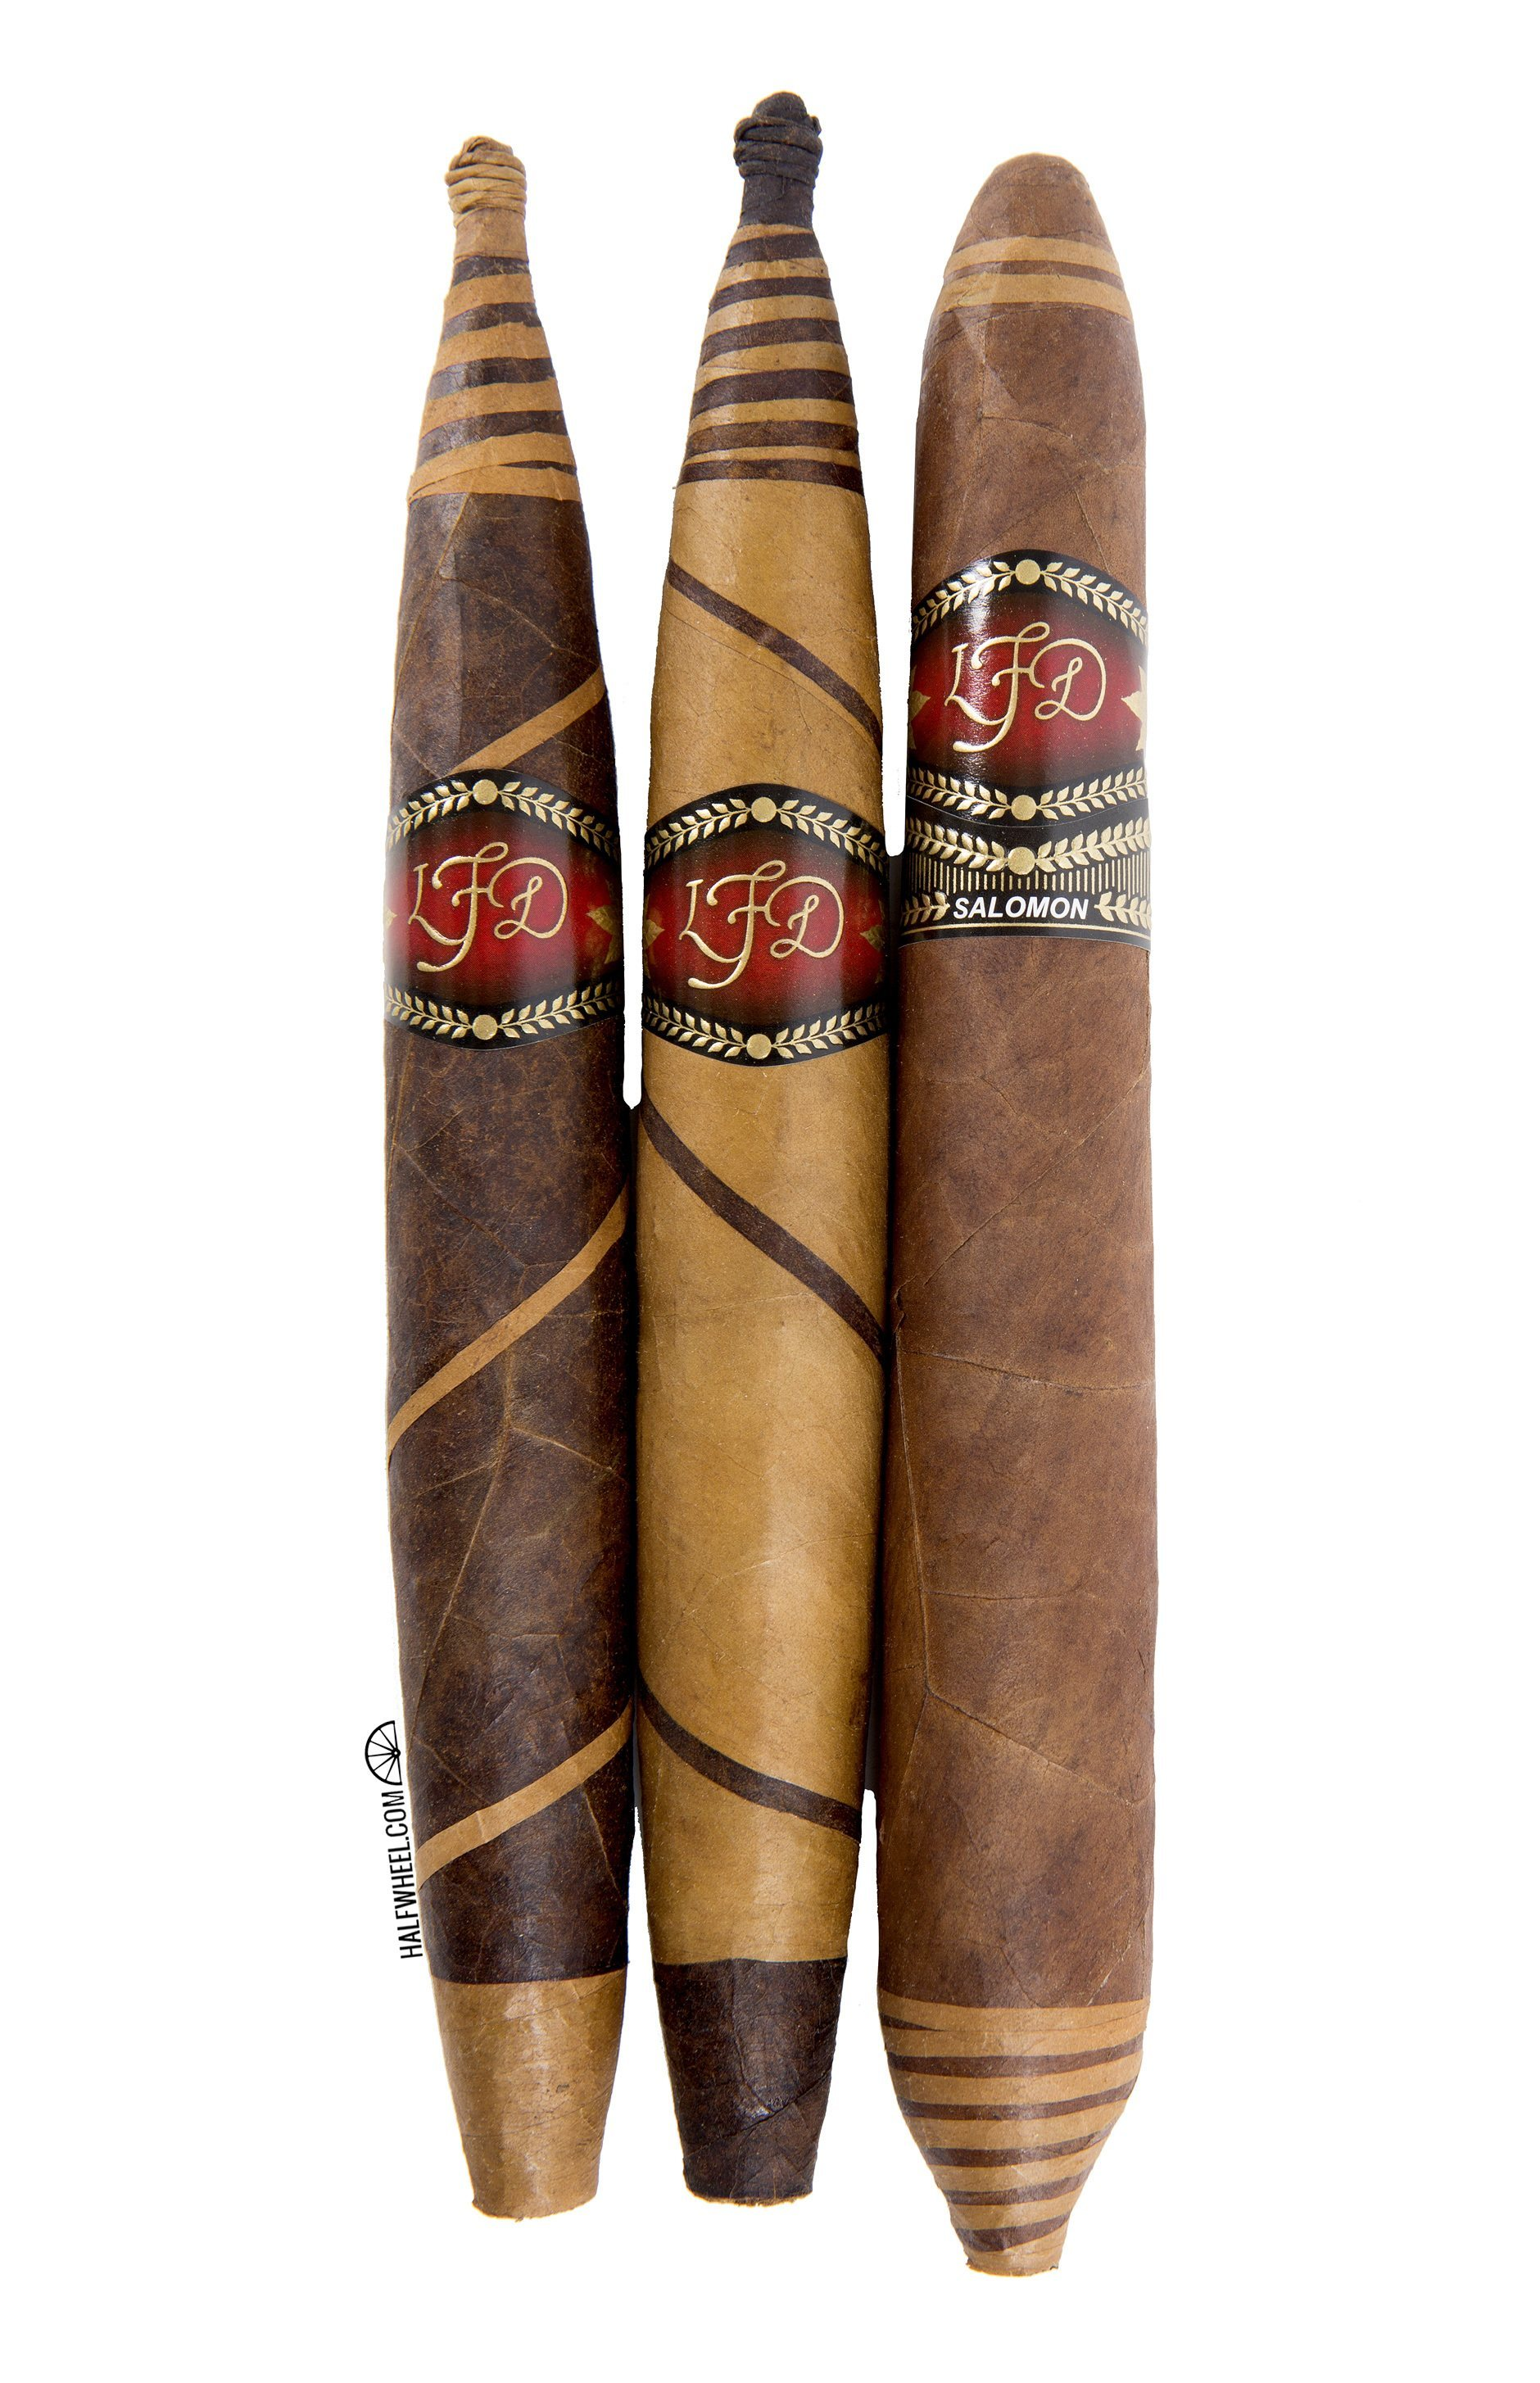 La Flor Dominicana Art Cigars